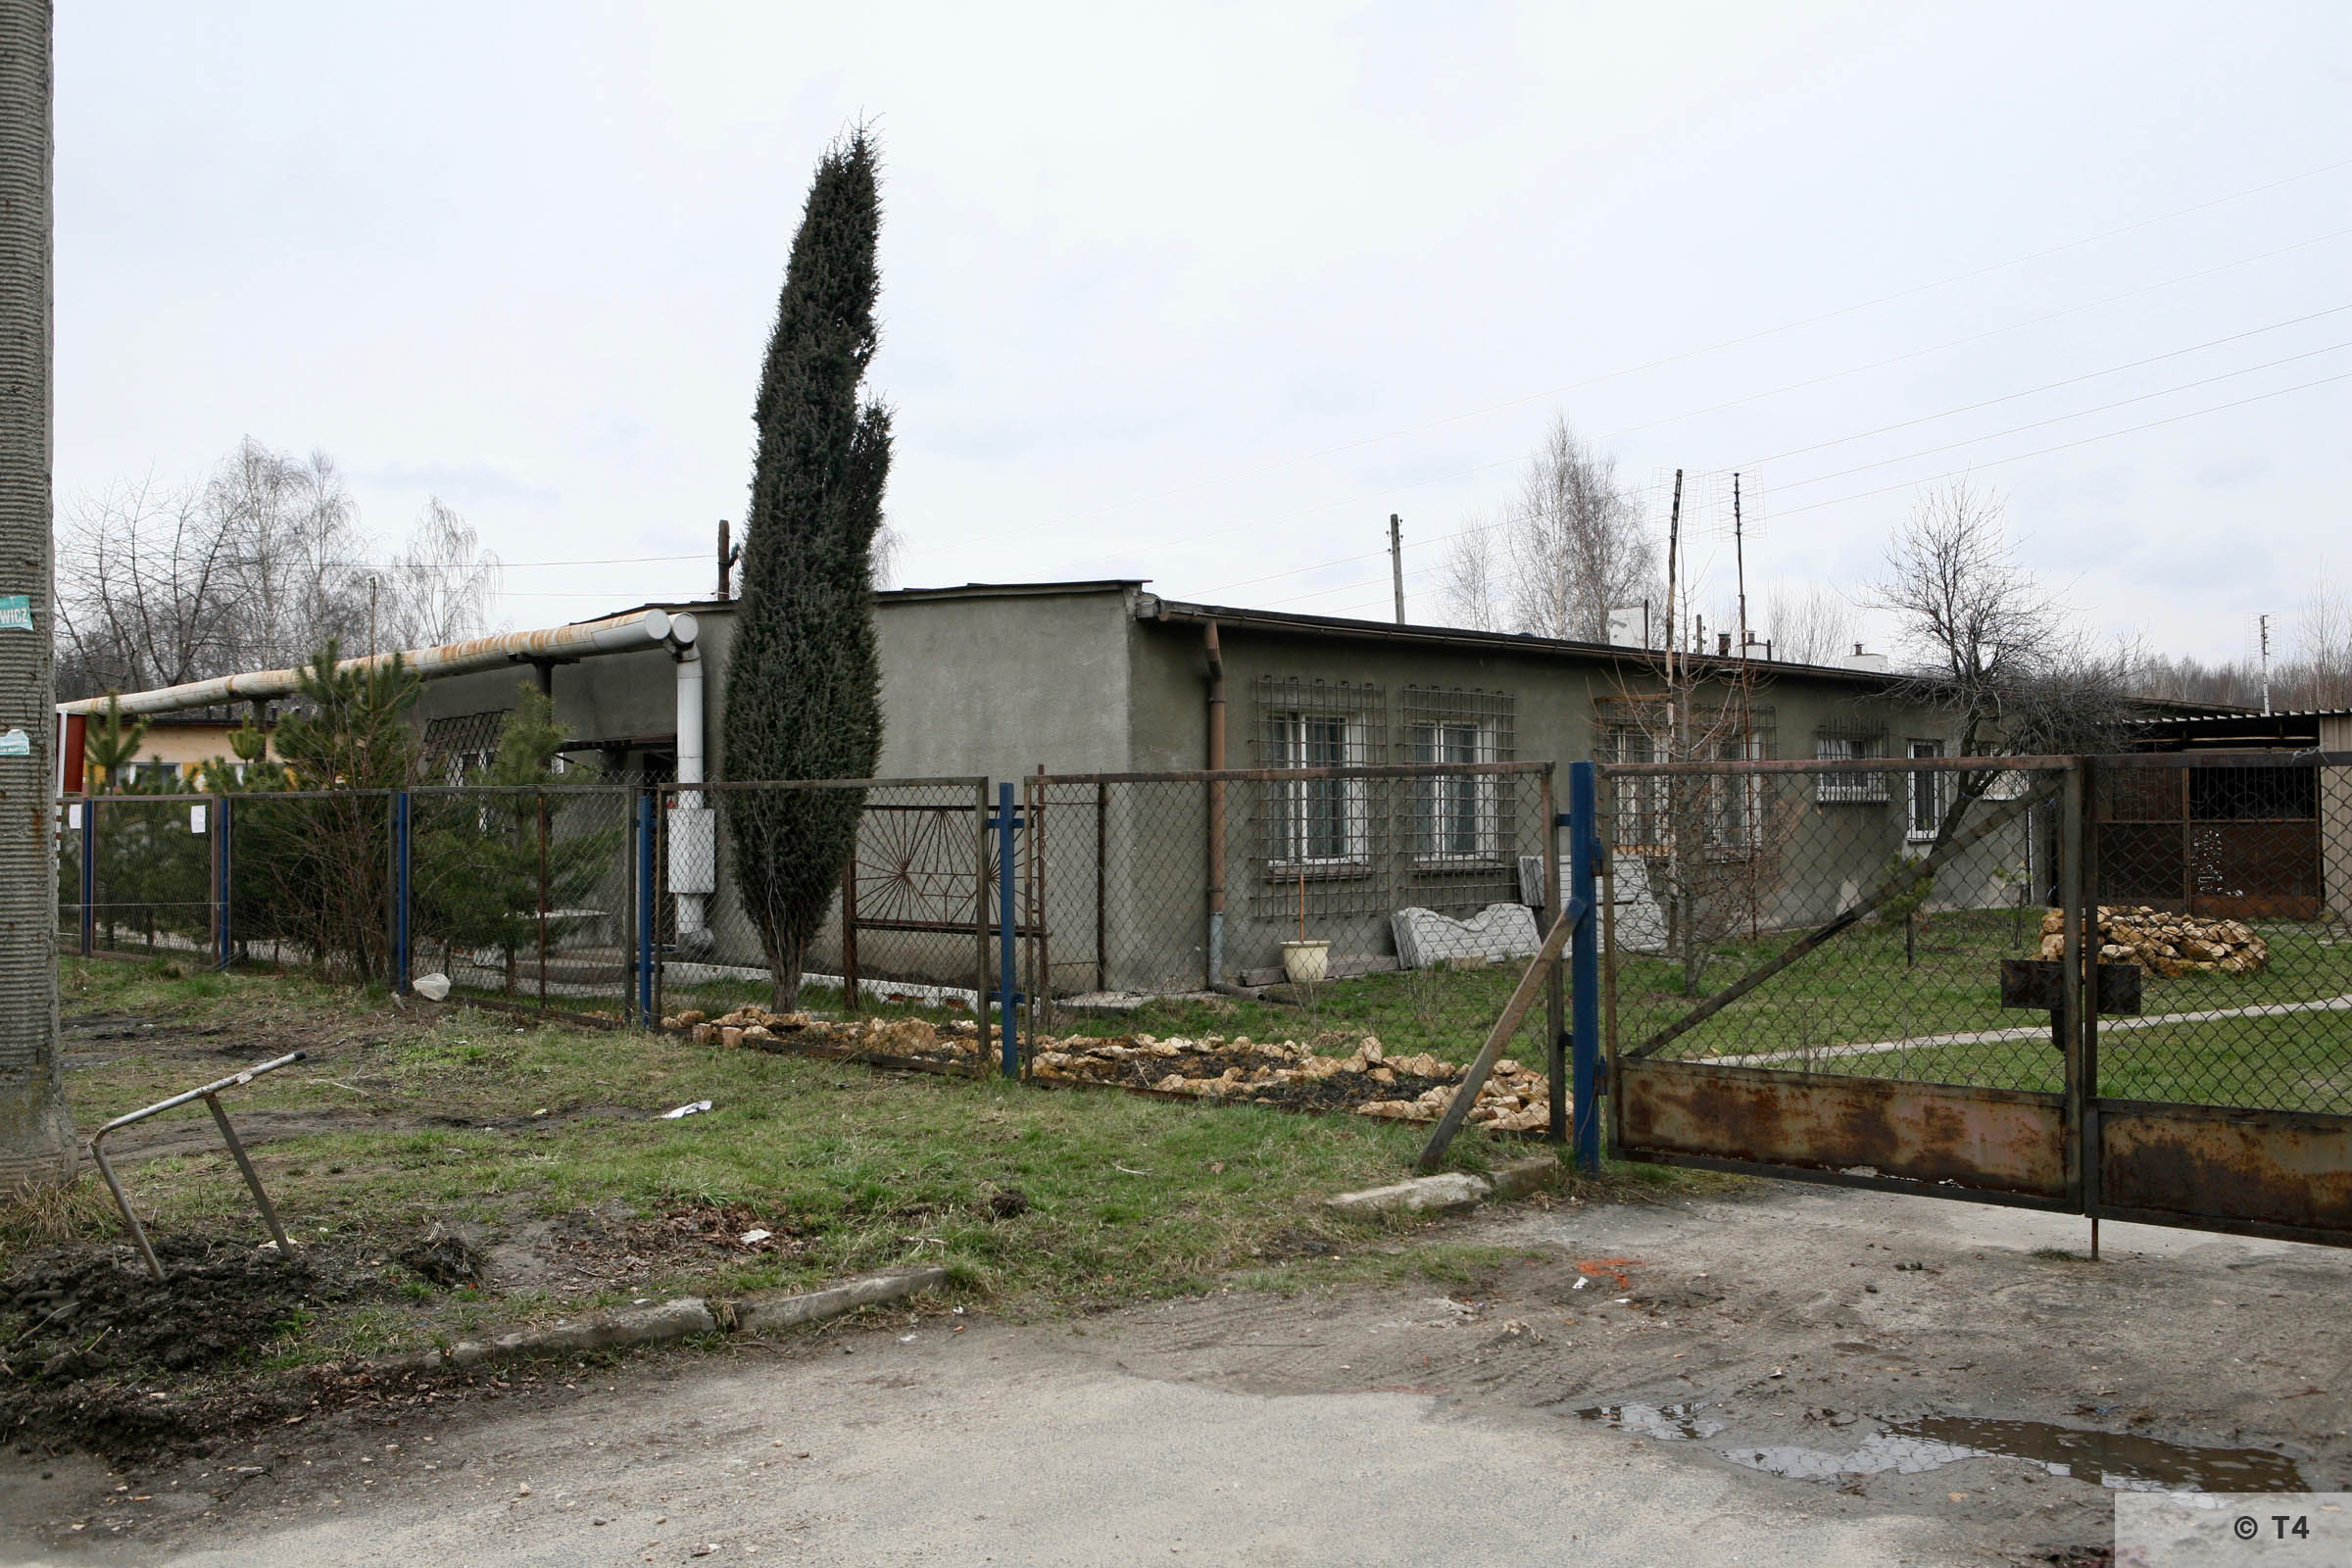 Former sub camp barracks. 2007 T4 4311